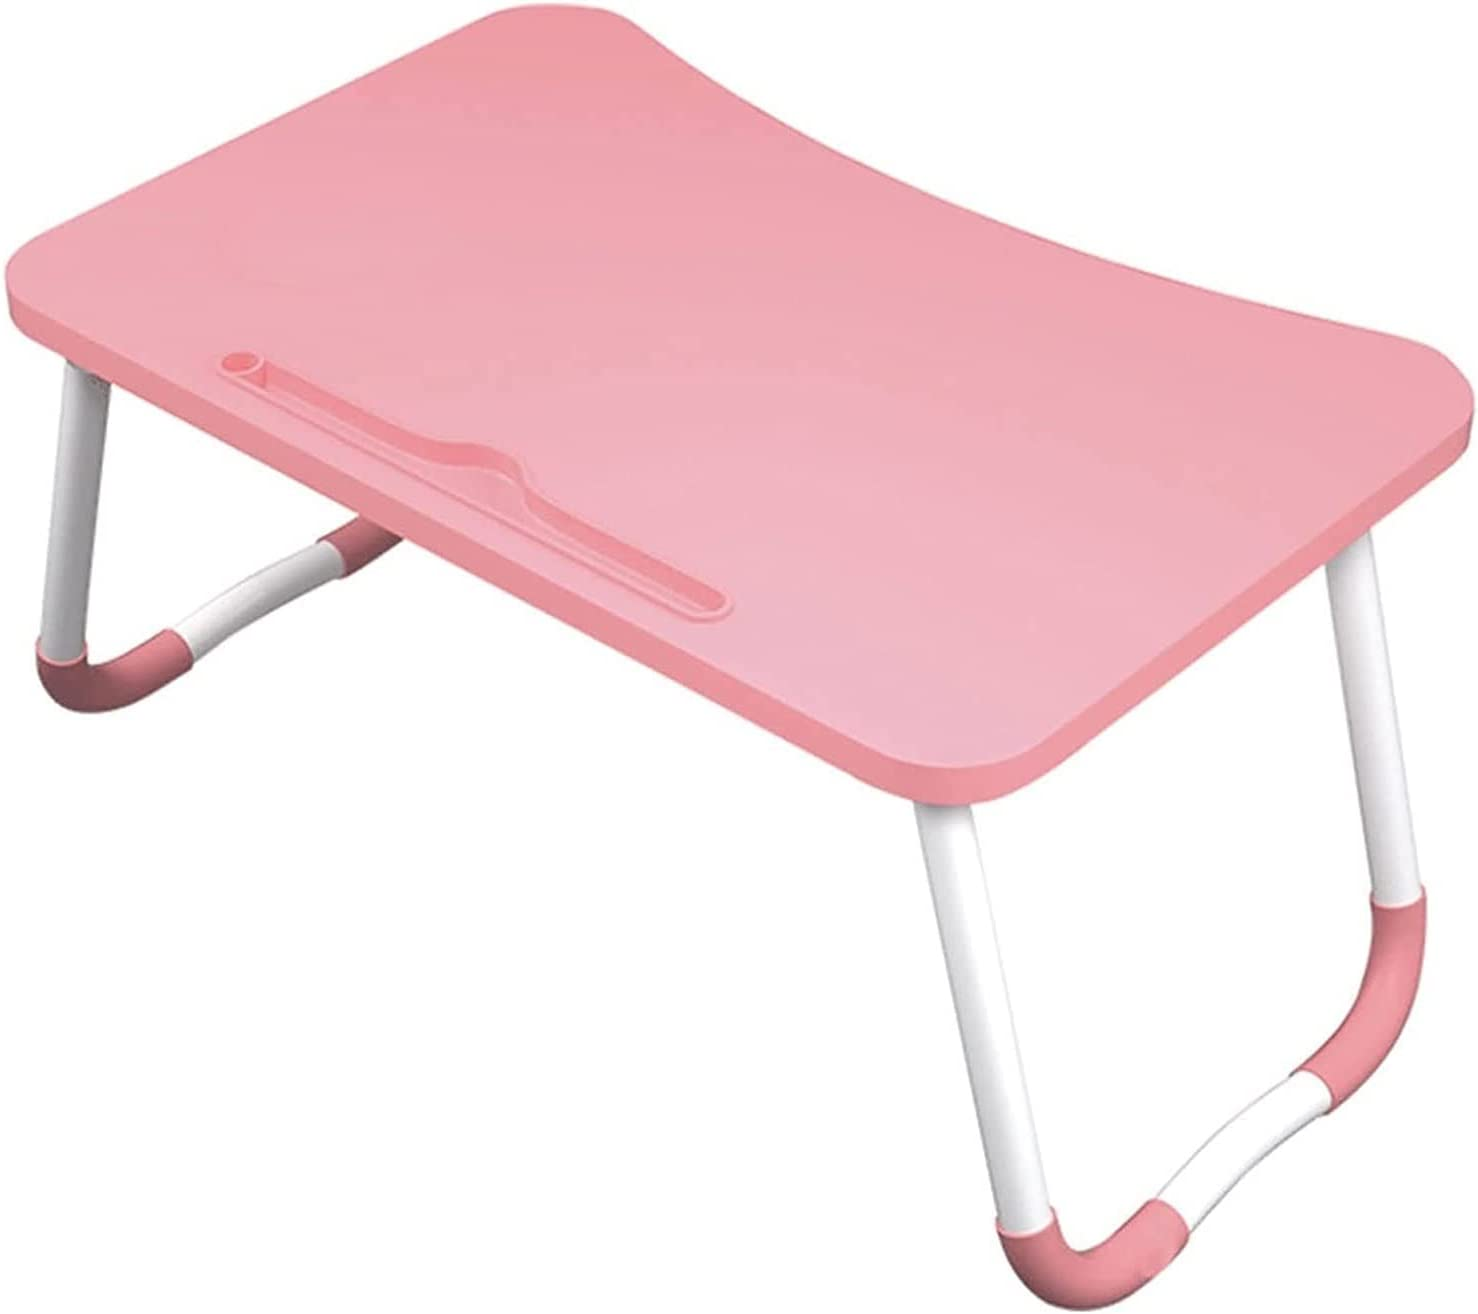 MYT MEIYITIAN Pink Bed Minneapolis Mall with Desk Simple Dormi Home Brand new and Lazy Easy